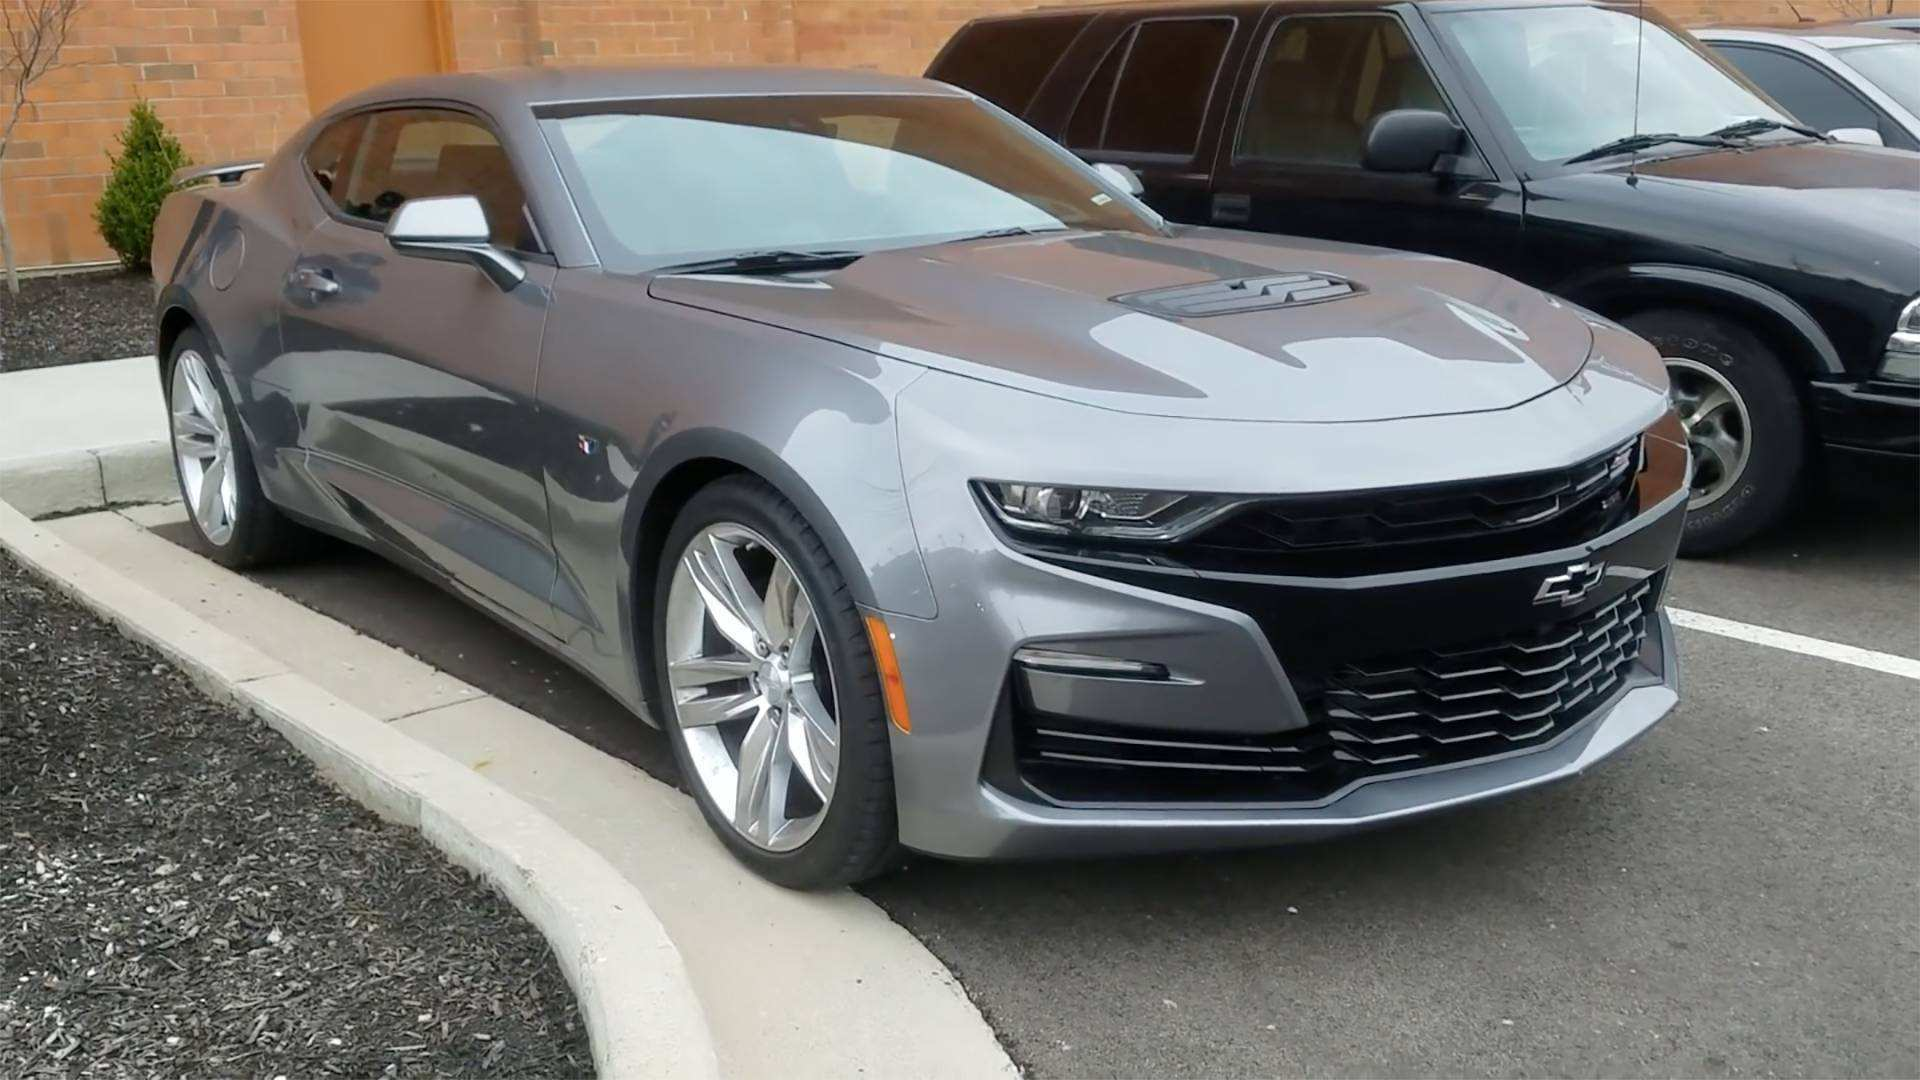 25 All New 2019 The Camaro Ss Review